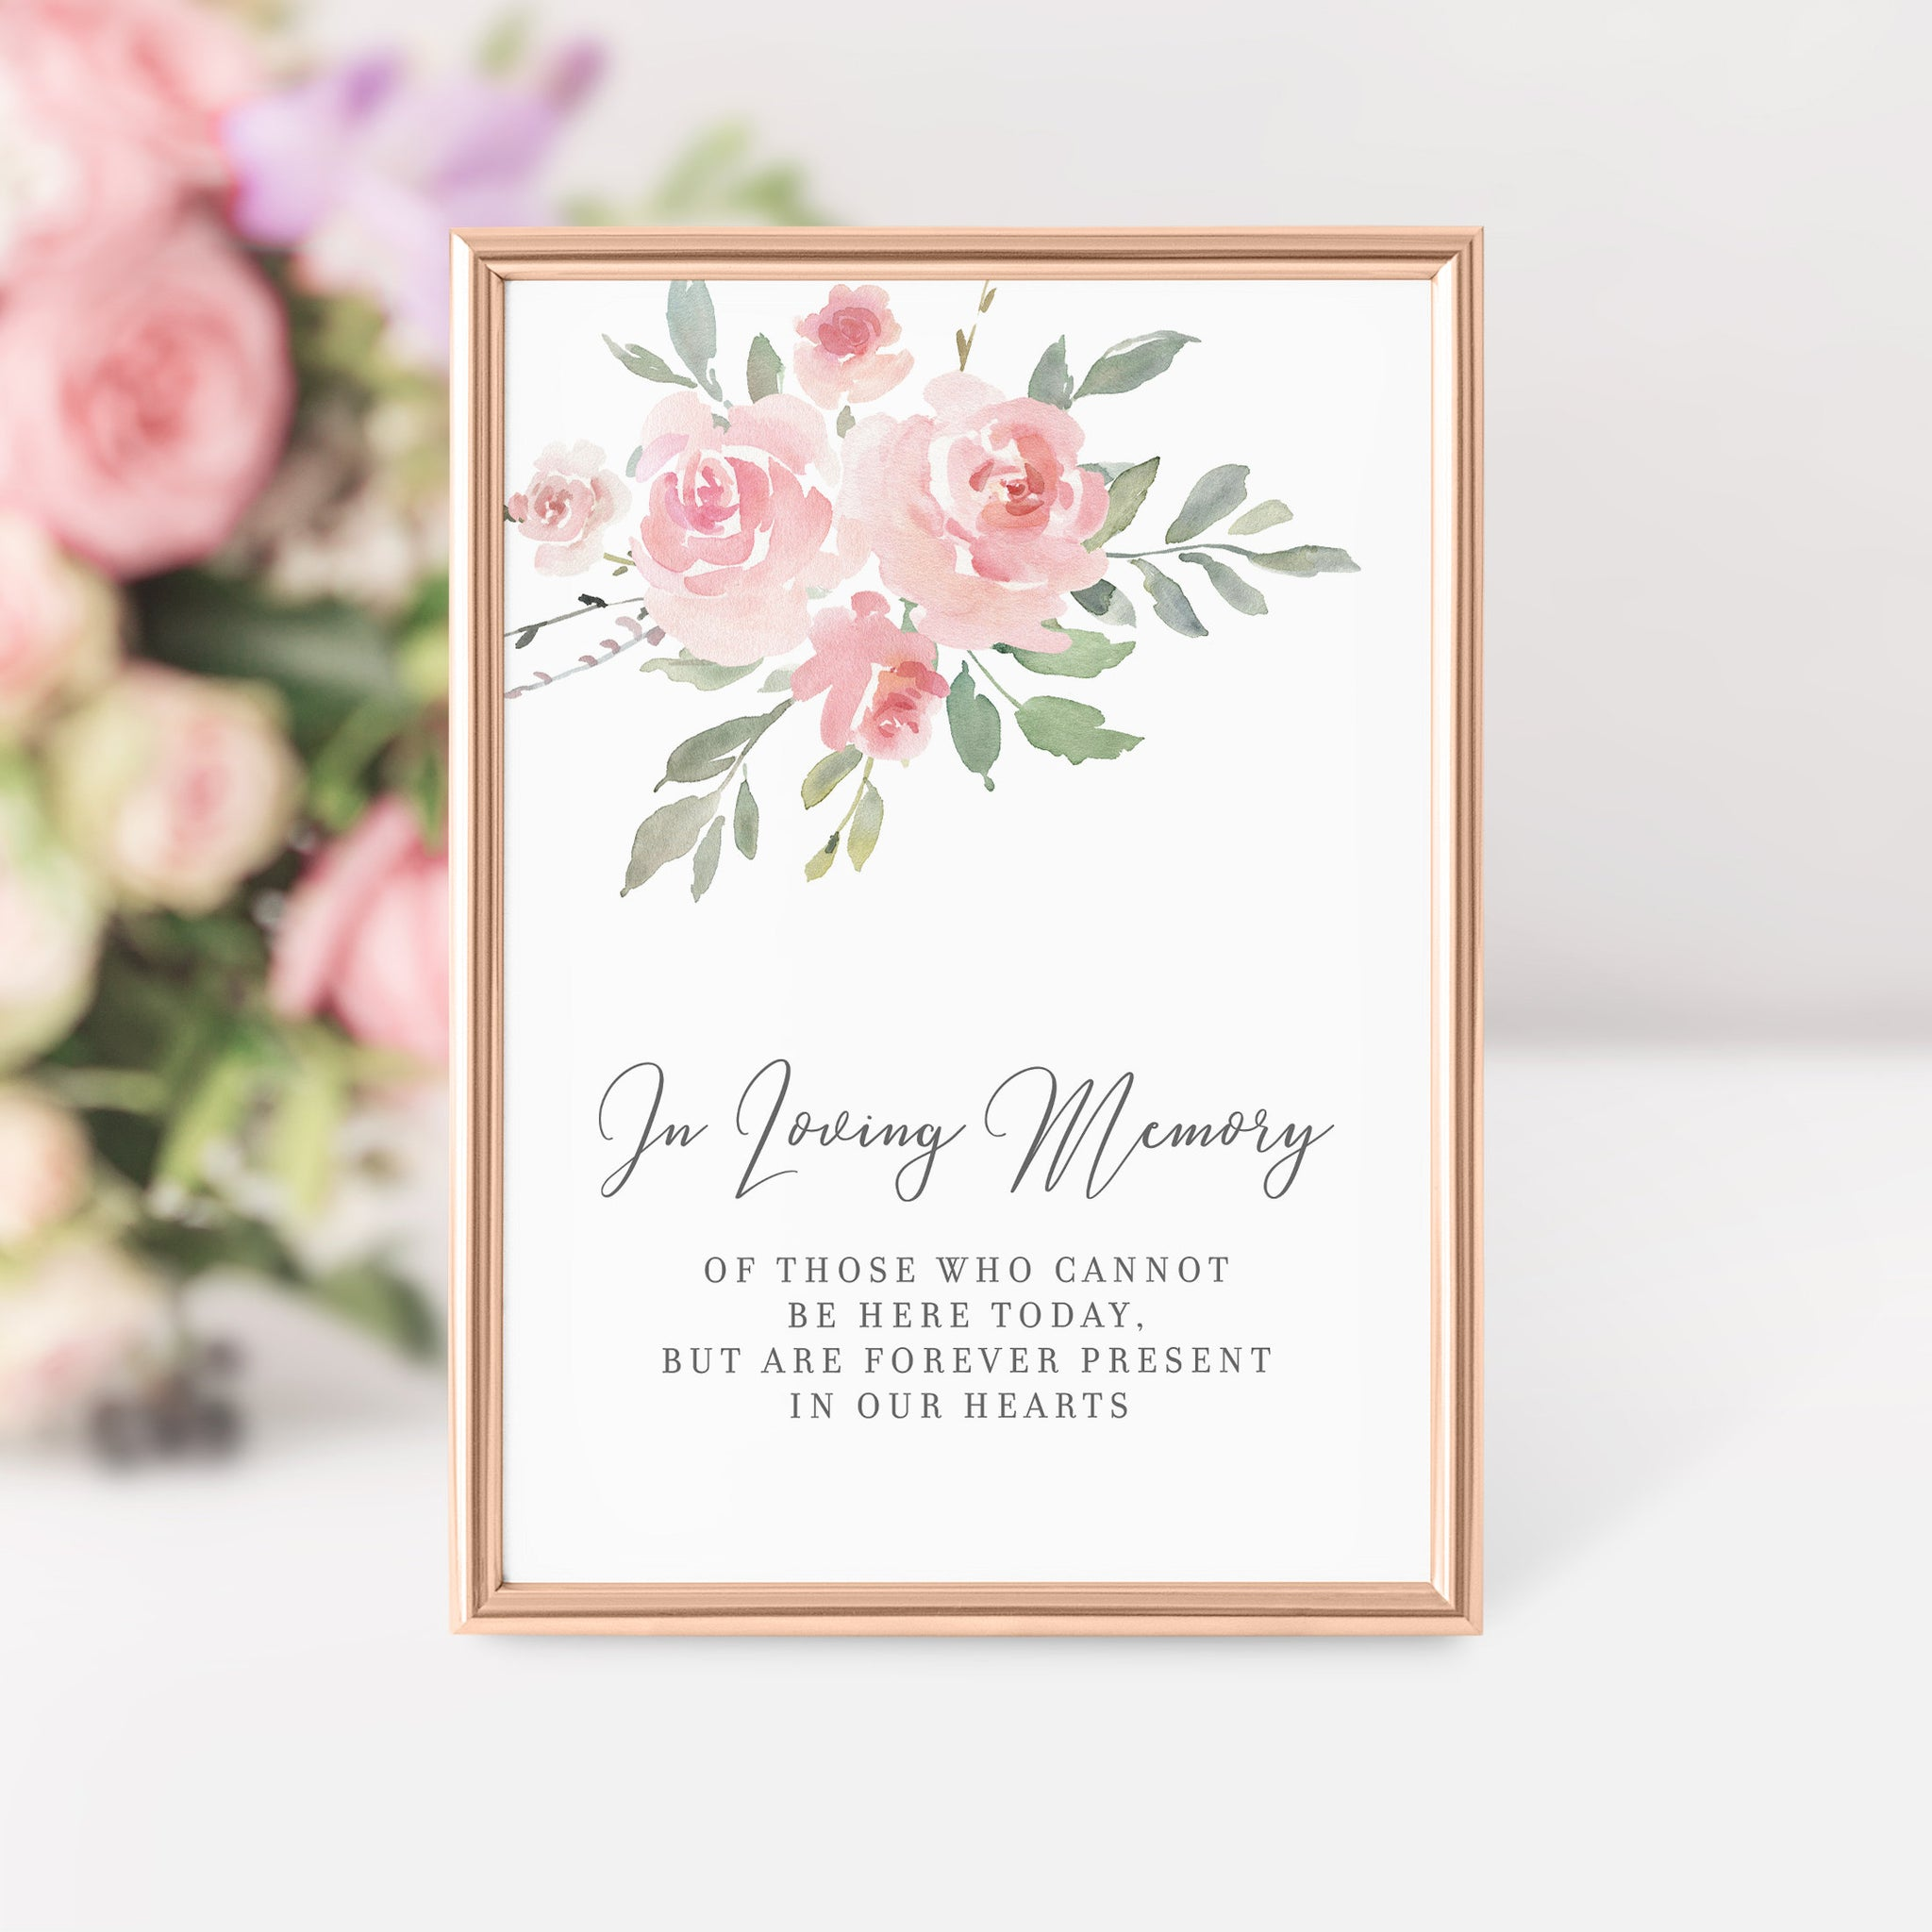 Blush Pink Floral Wedding Memorial Sign, In Loving Memory Sign Printable, Remembrance Sign Wedding, INSTANT DOWNLOAD - FR100 - @PlumPolkaDot